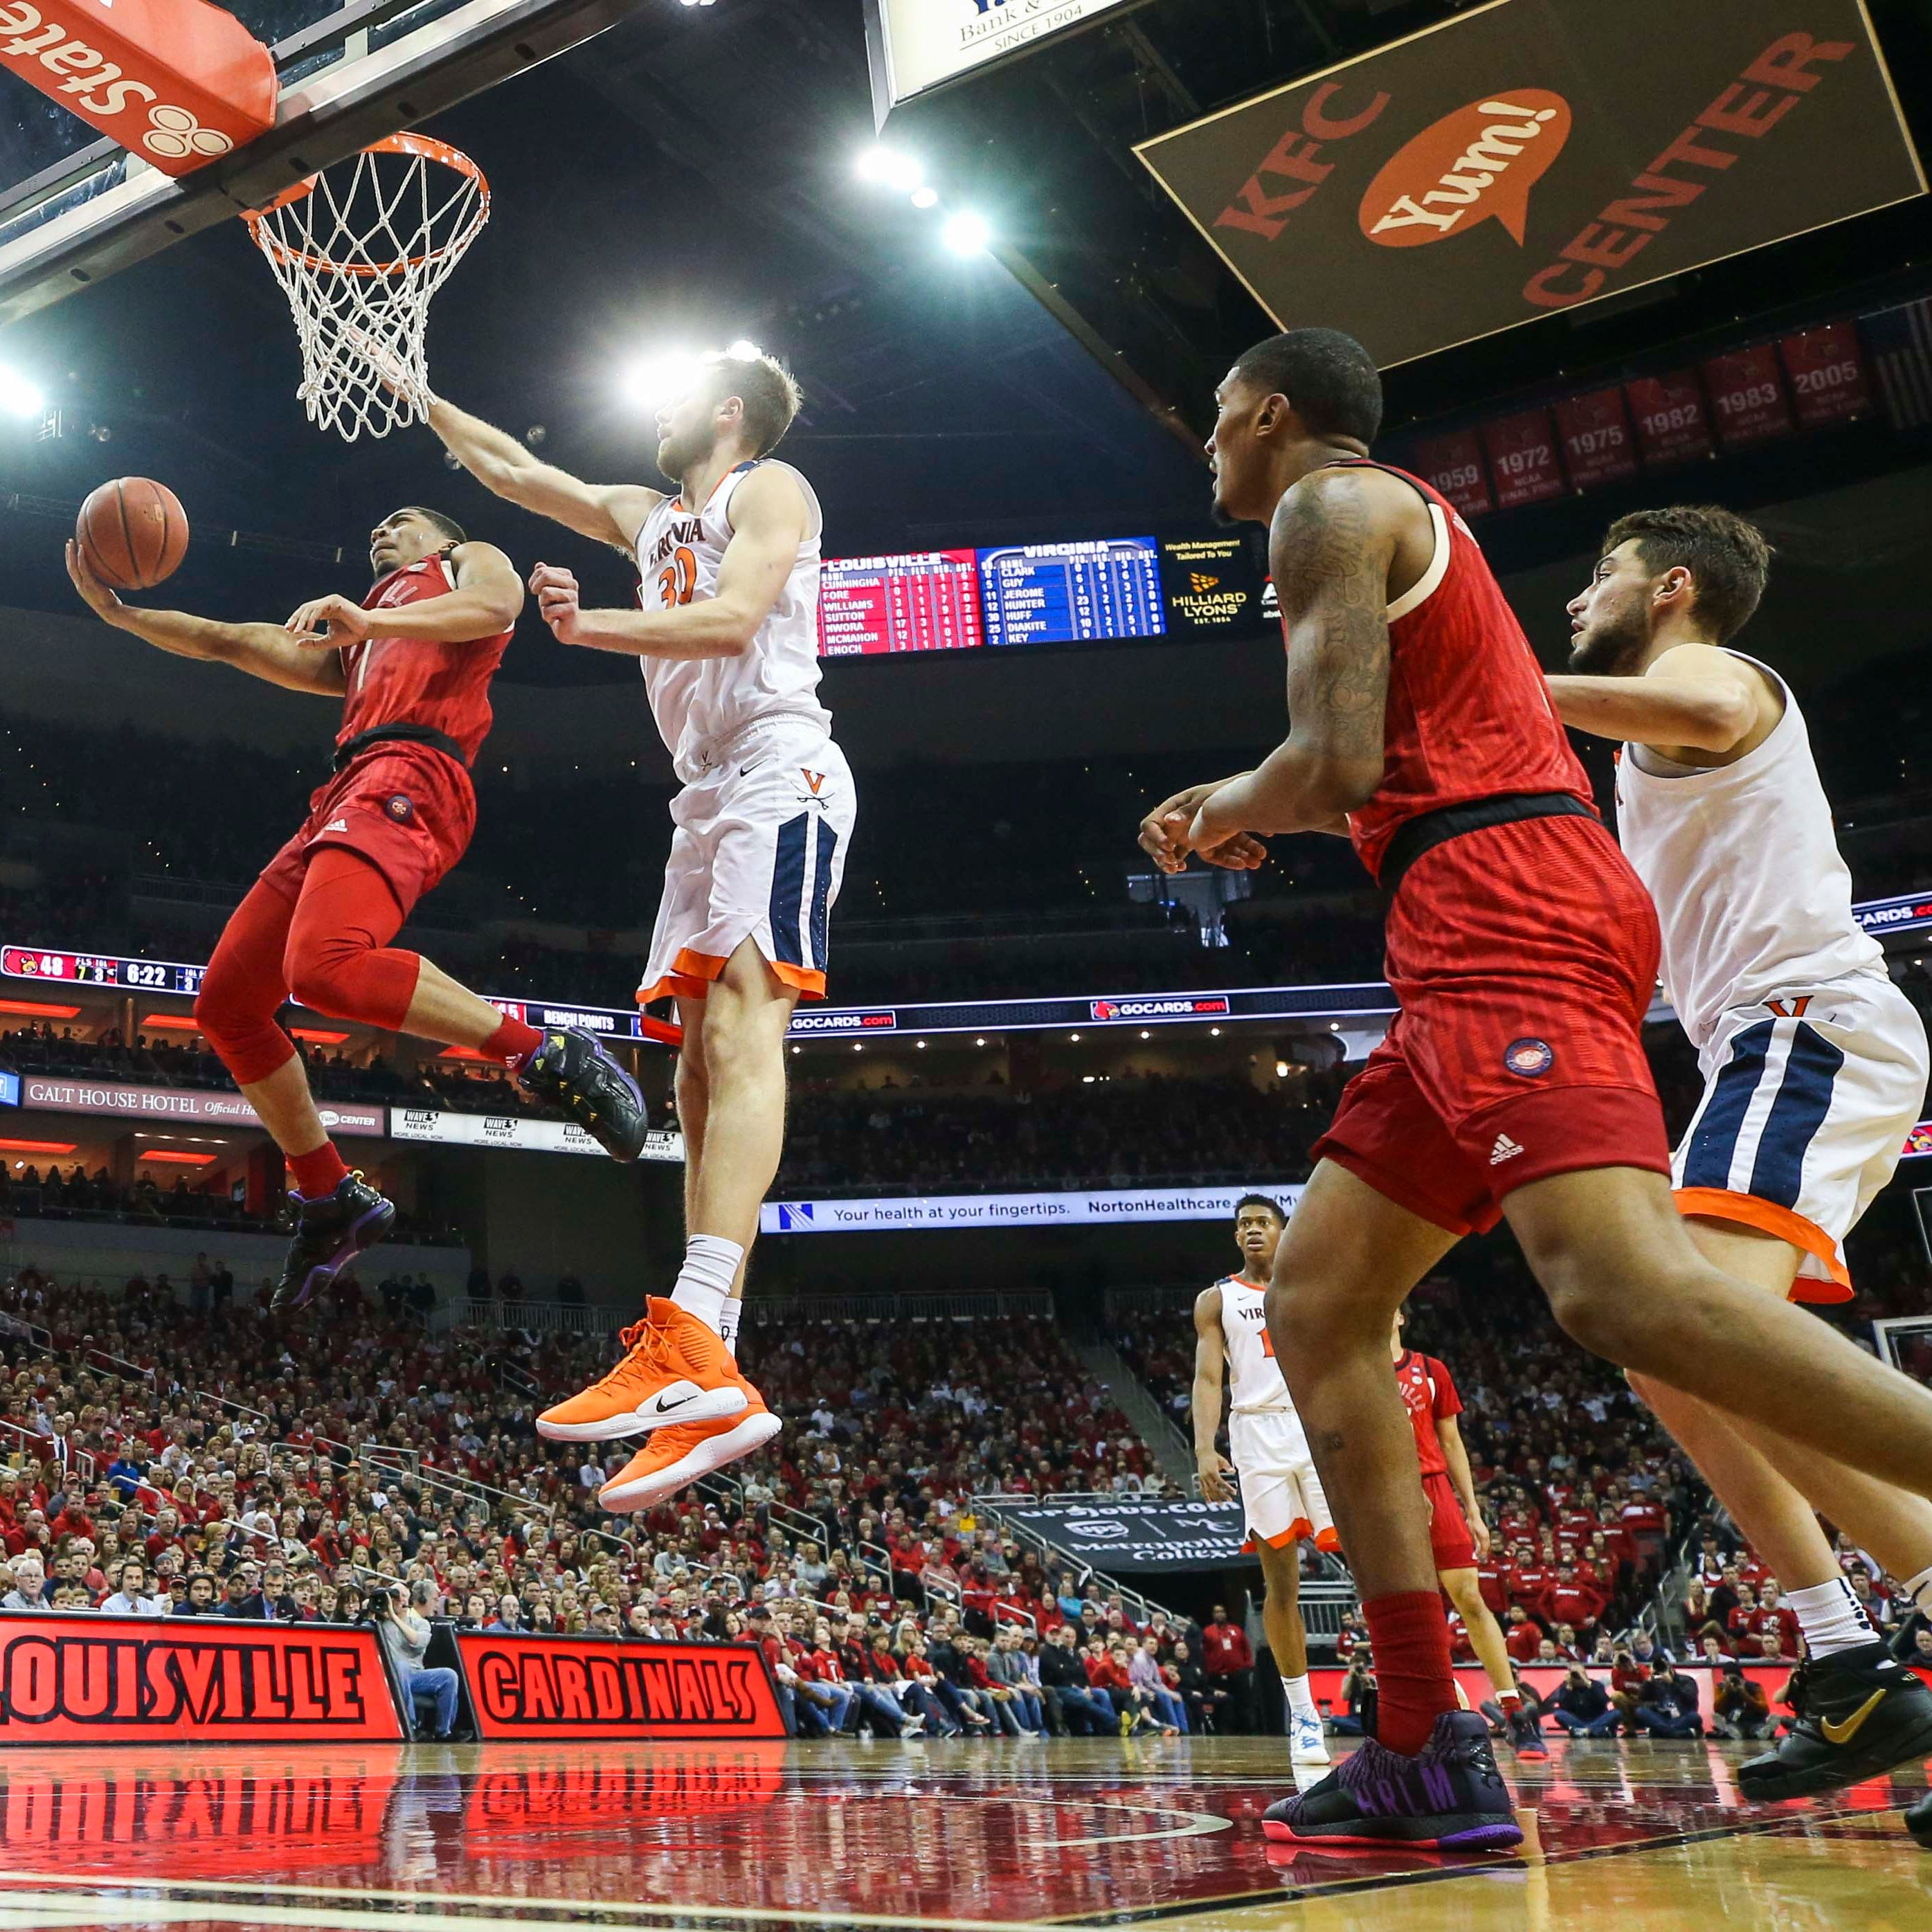 Louisville basketball at Virginia: How to watch, listen, stream